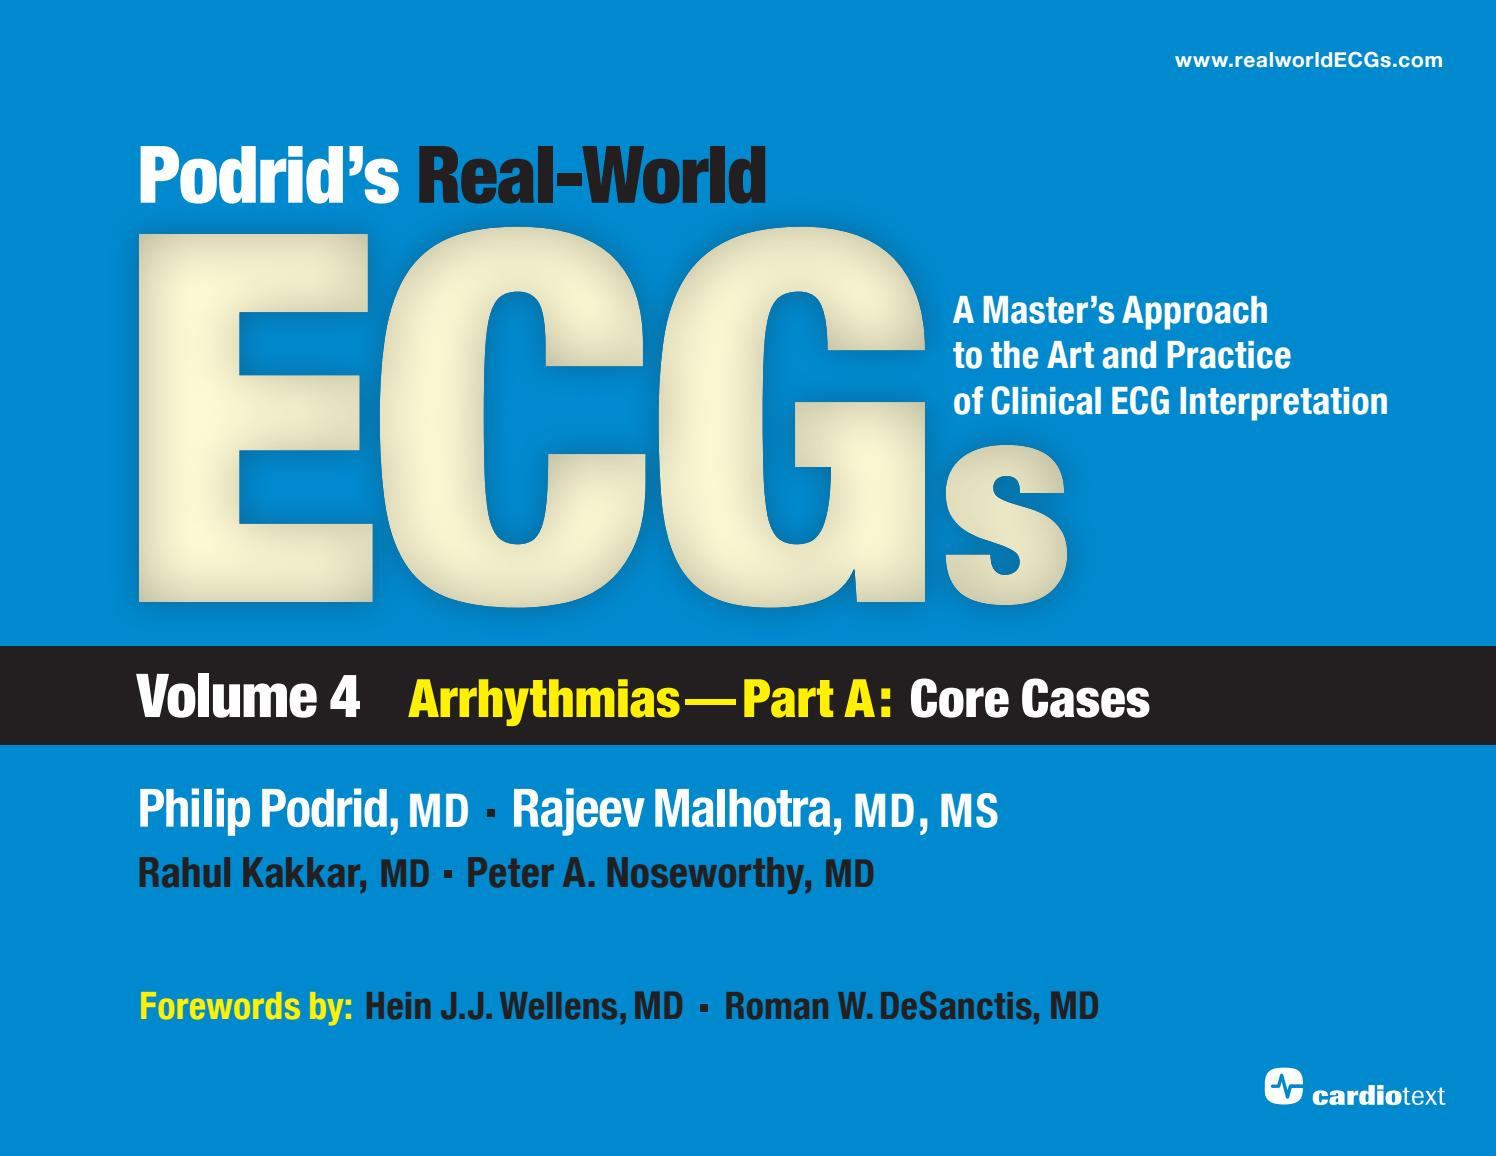 Podrids Real World Ecgs V4a Sample File Cases 1 5 By Cardiotext Invention Story Of Electrocardiography Ecg Willem Einthoven Publishing Issuu